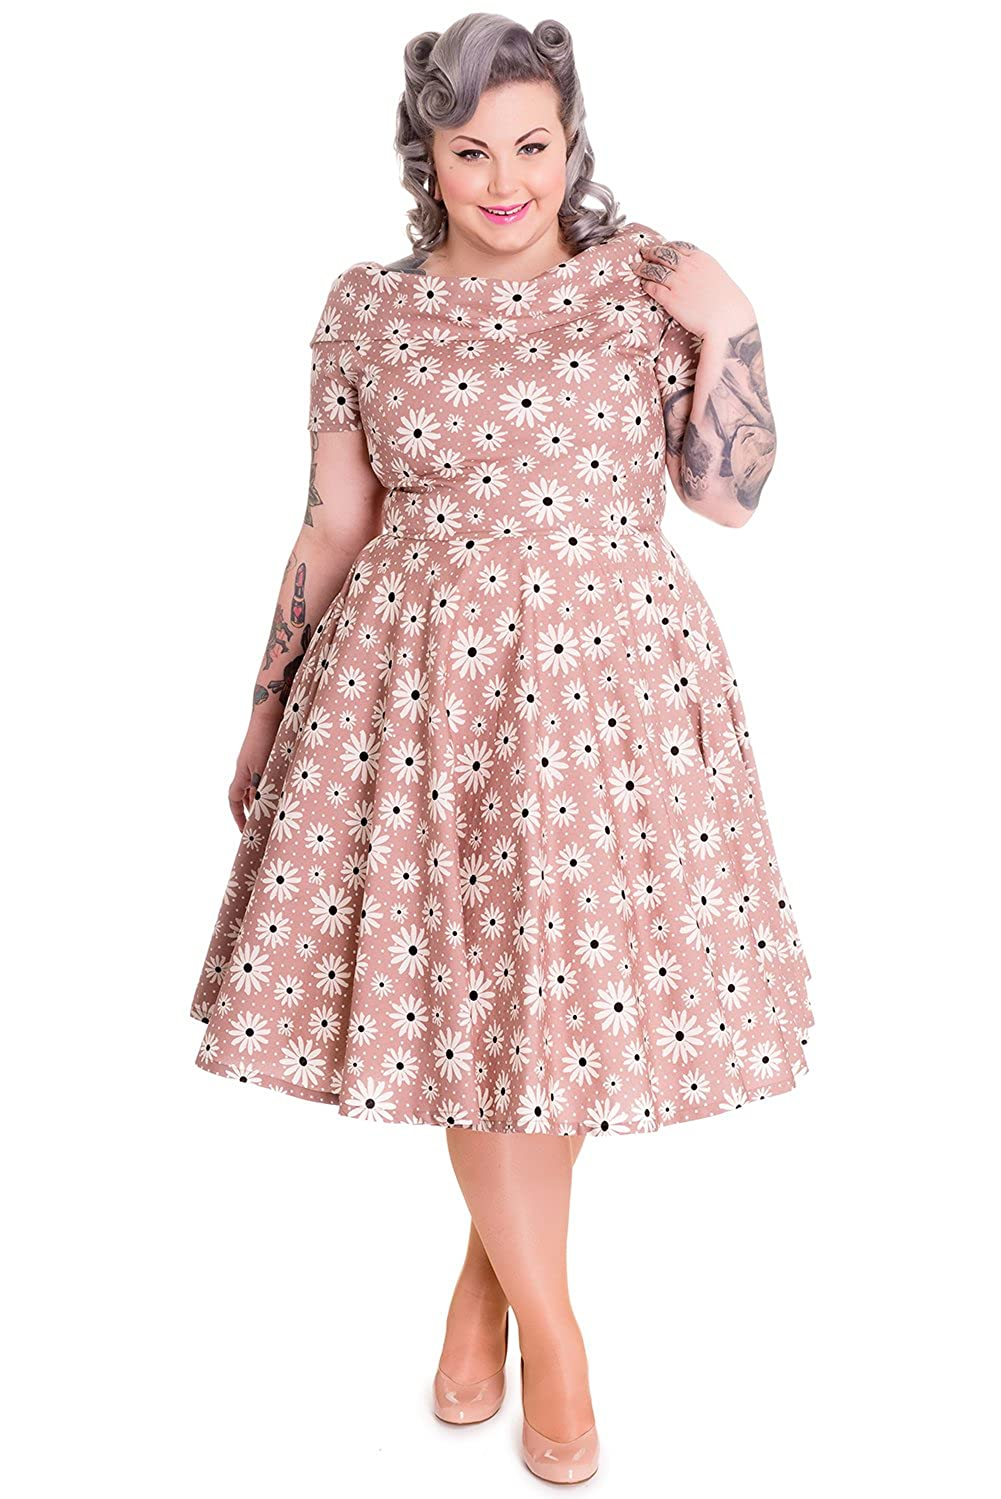 1950s Dresses, 50s Dresses | 1950s Style Dresses Hell Bunny Plus 50s Lovely Lady Daisy Floral Polka Dot Party Dress Latte Brown $78.00 AT vintagedancer.com